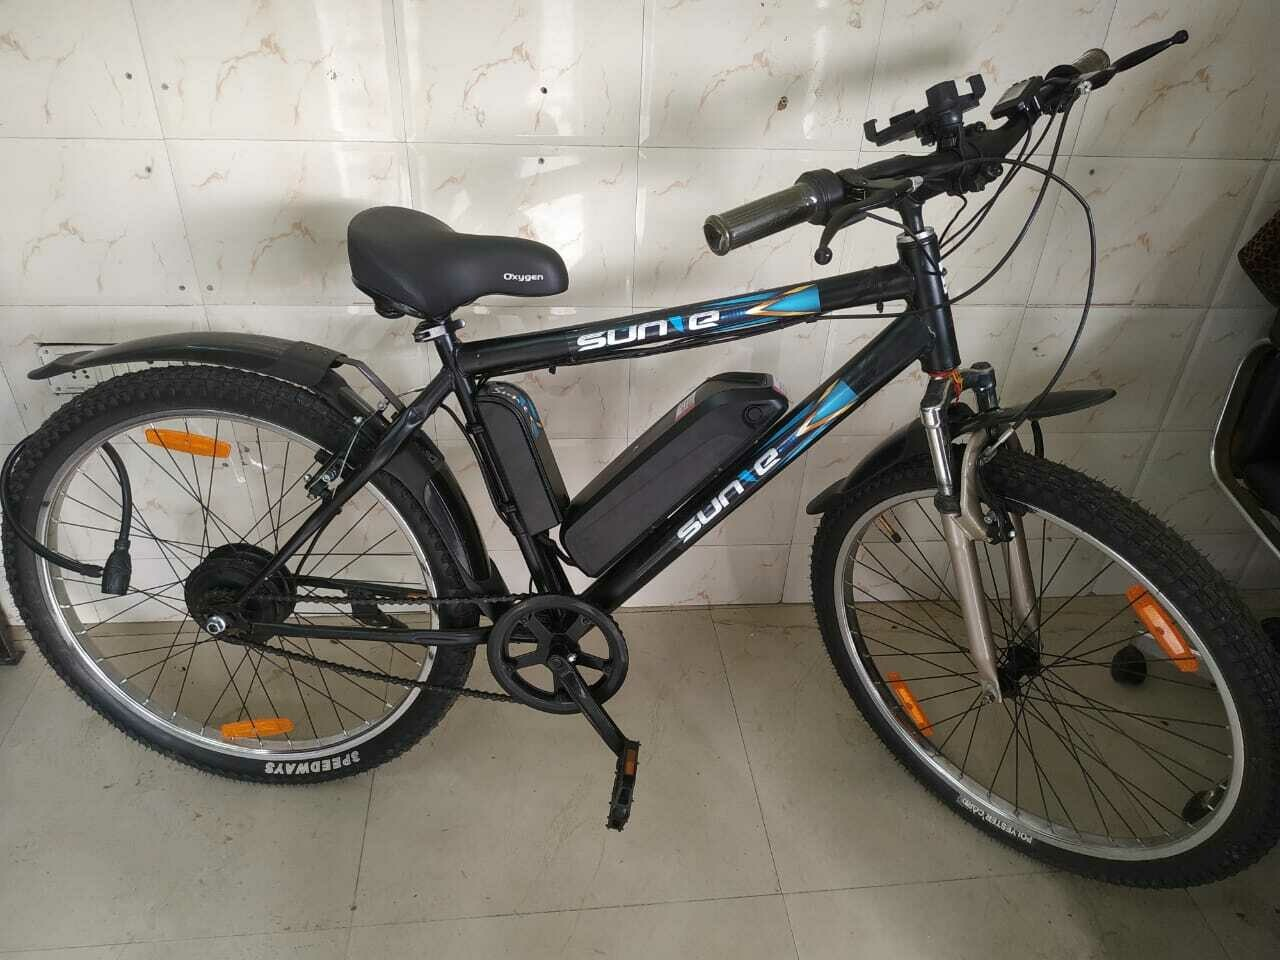 SUN-E (GEN-1 Electric Bicycle, IP65-WATERPROOF)